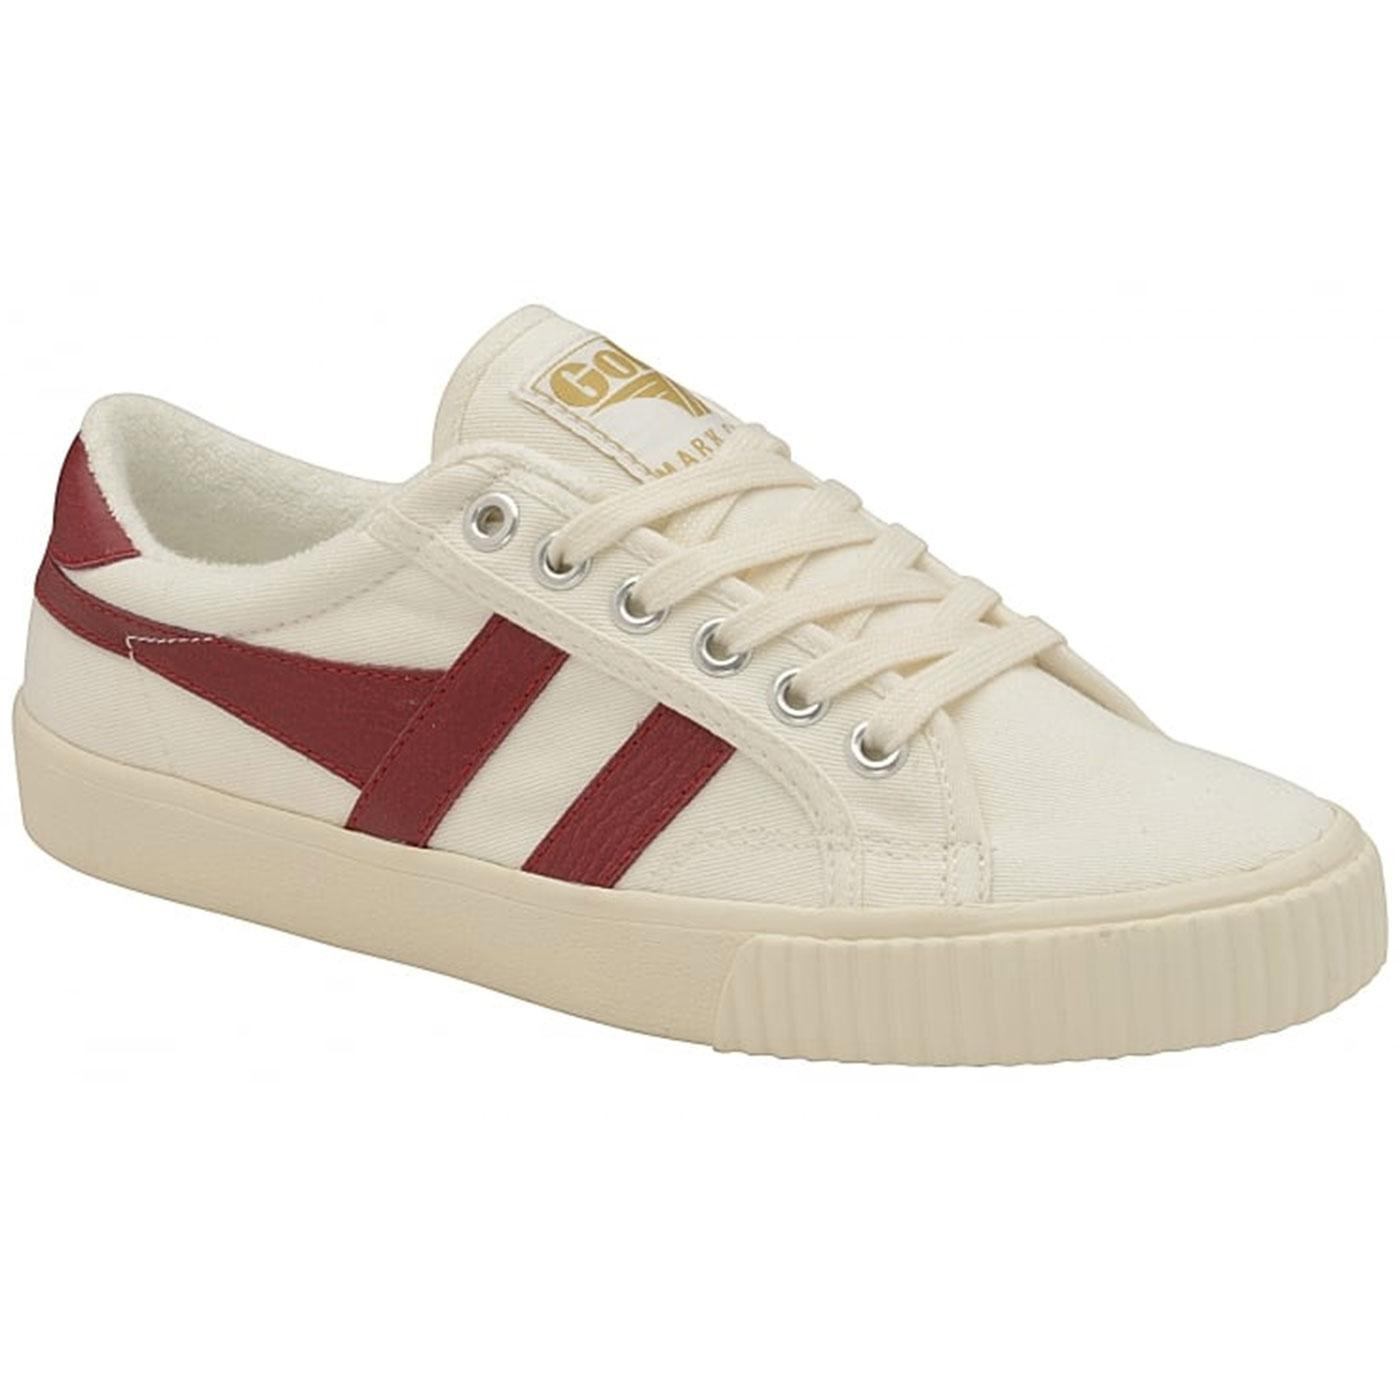 GOLA Mark Cox Womens Retro 70s Tennis Trainers W/R